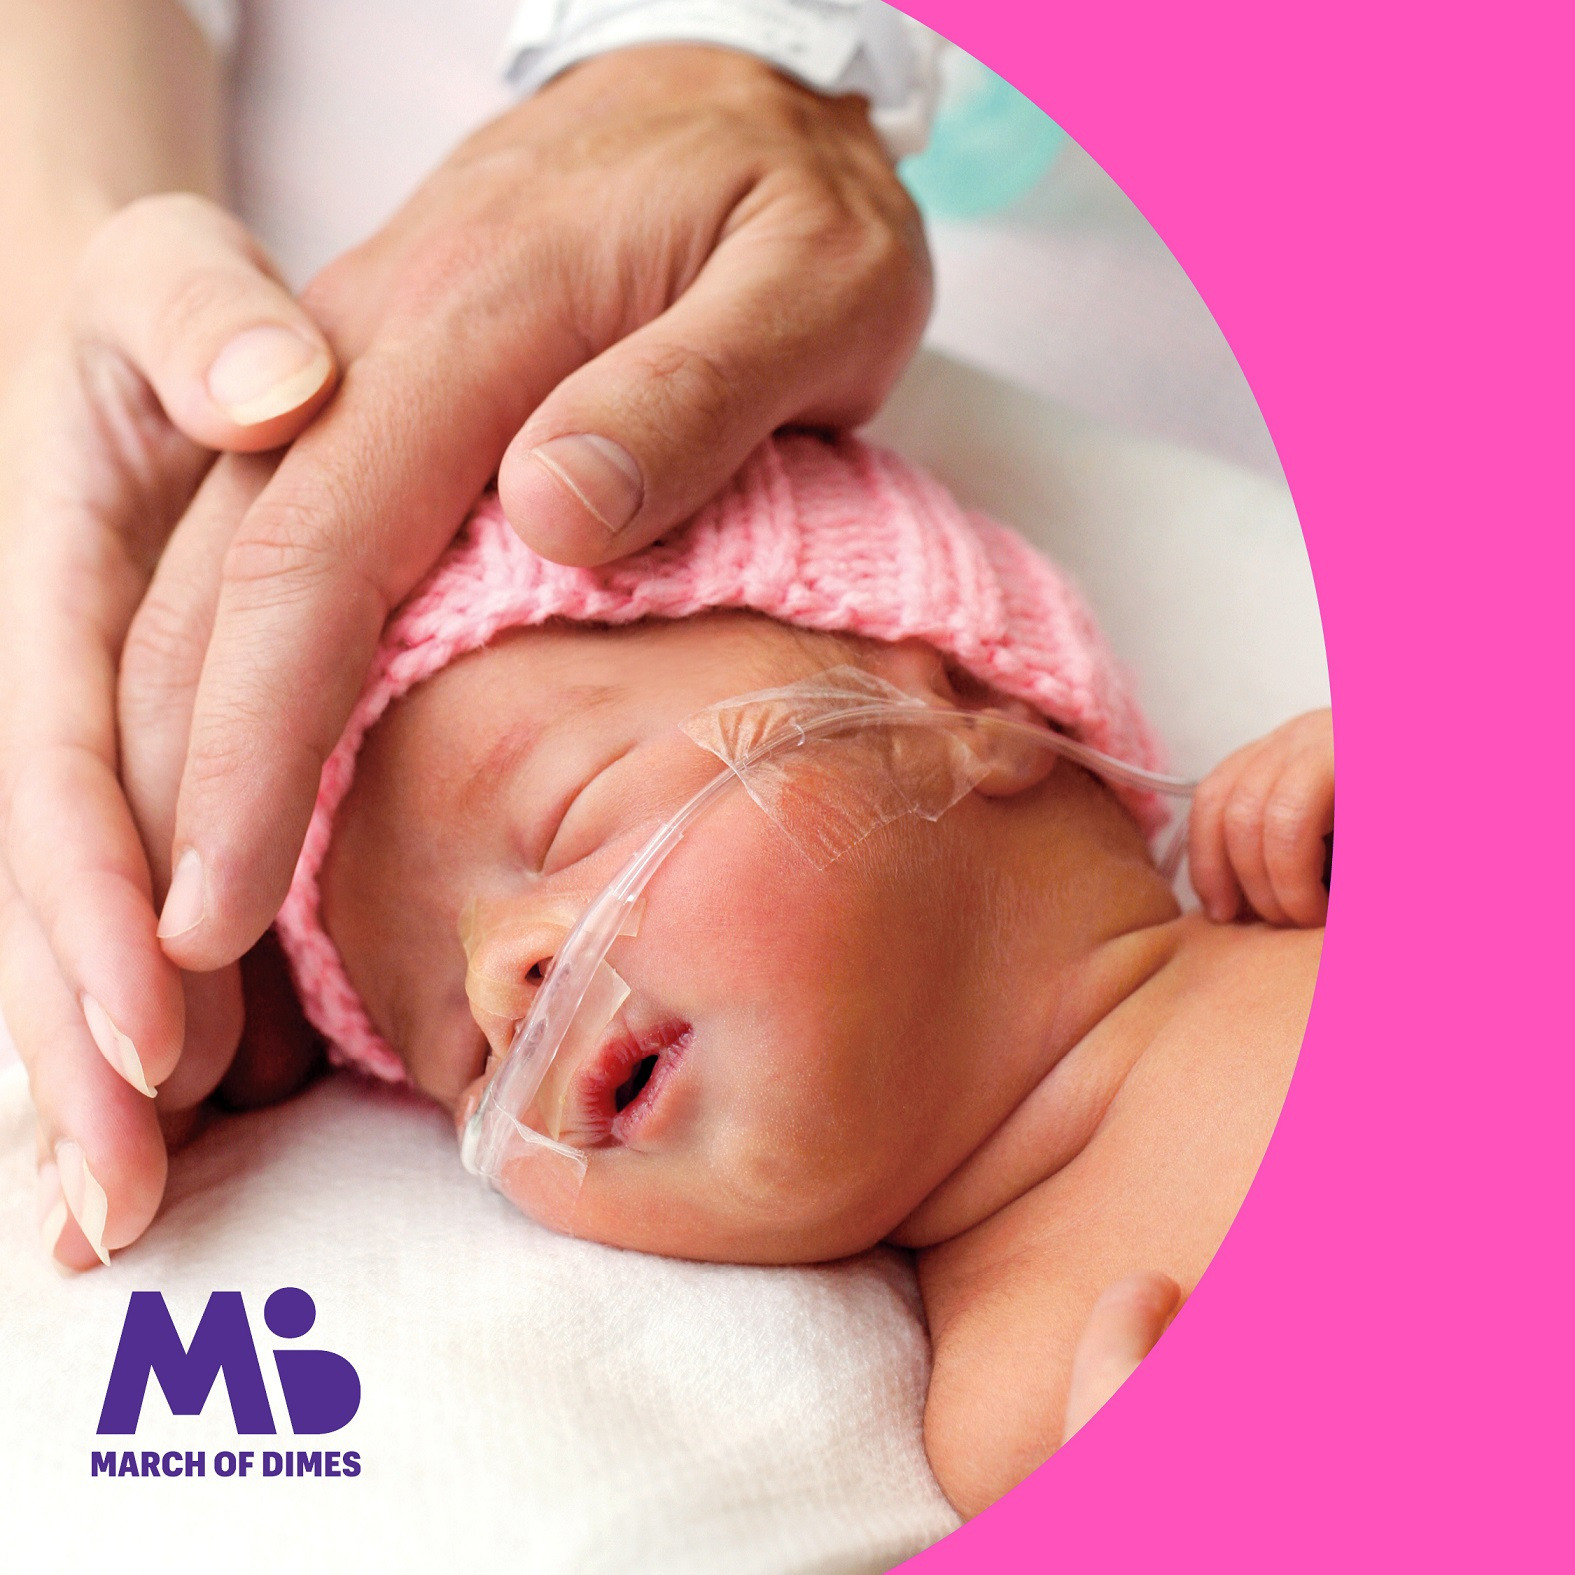 Taking care of yourself while your baby is in the NICU